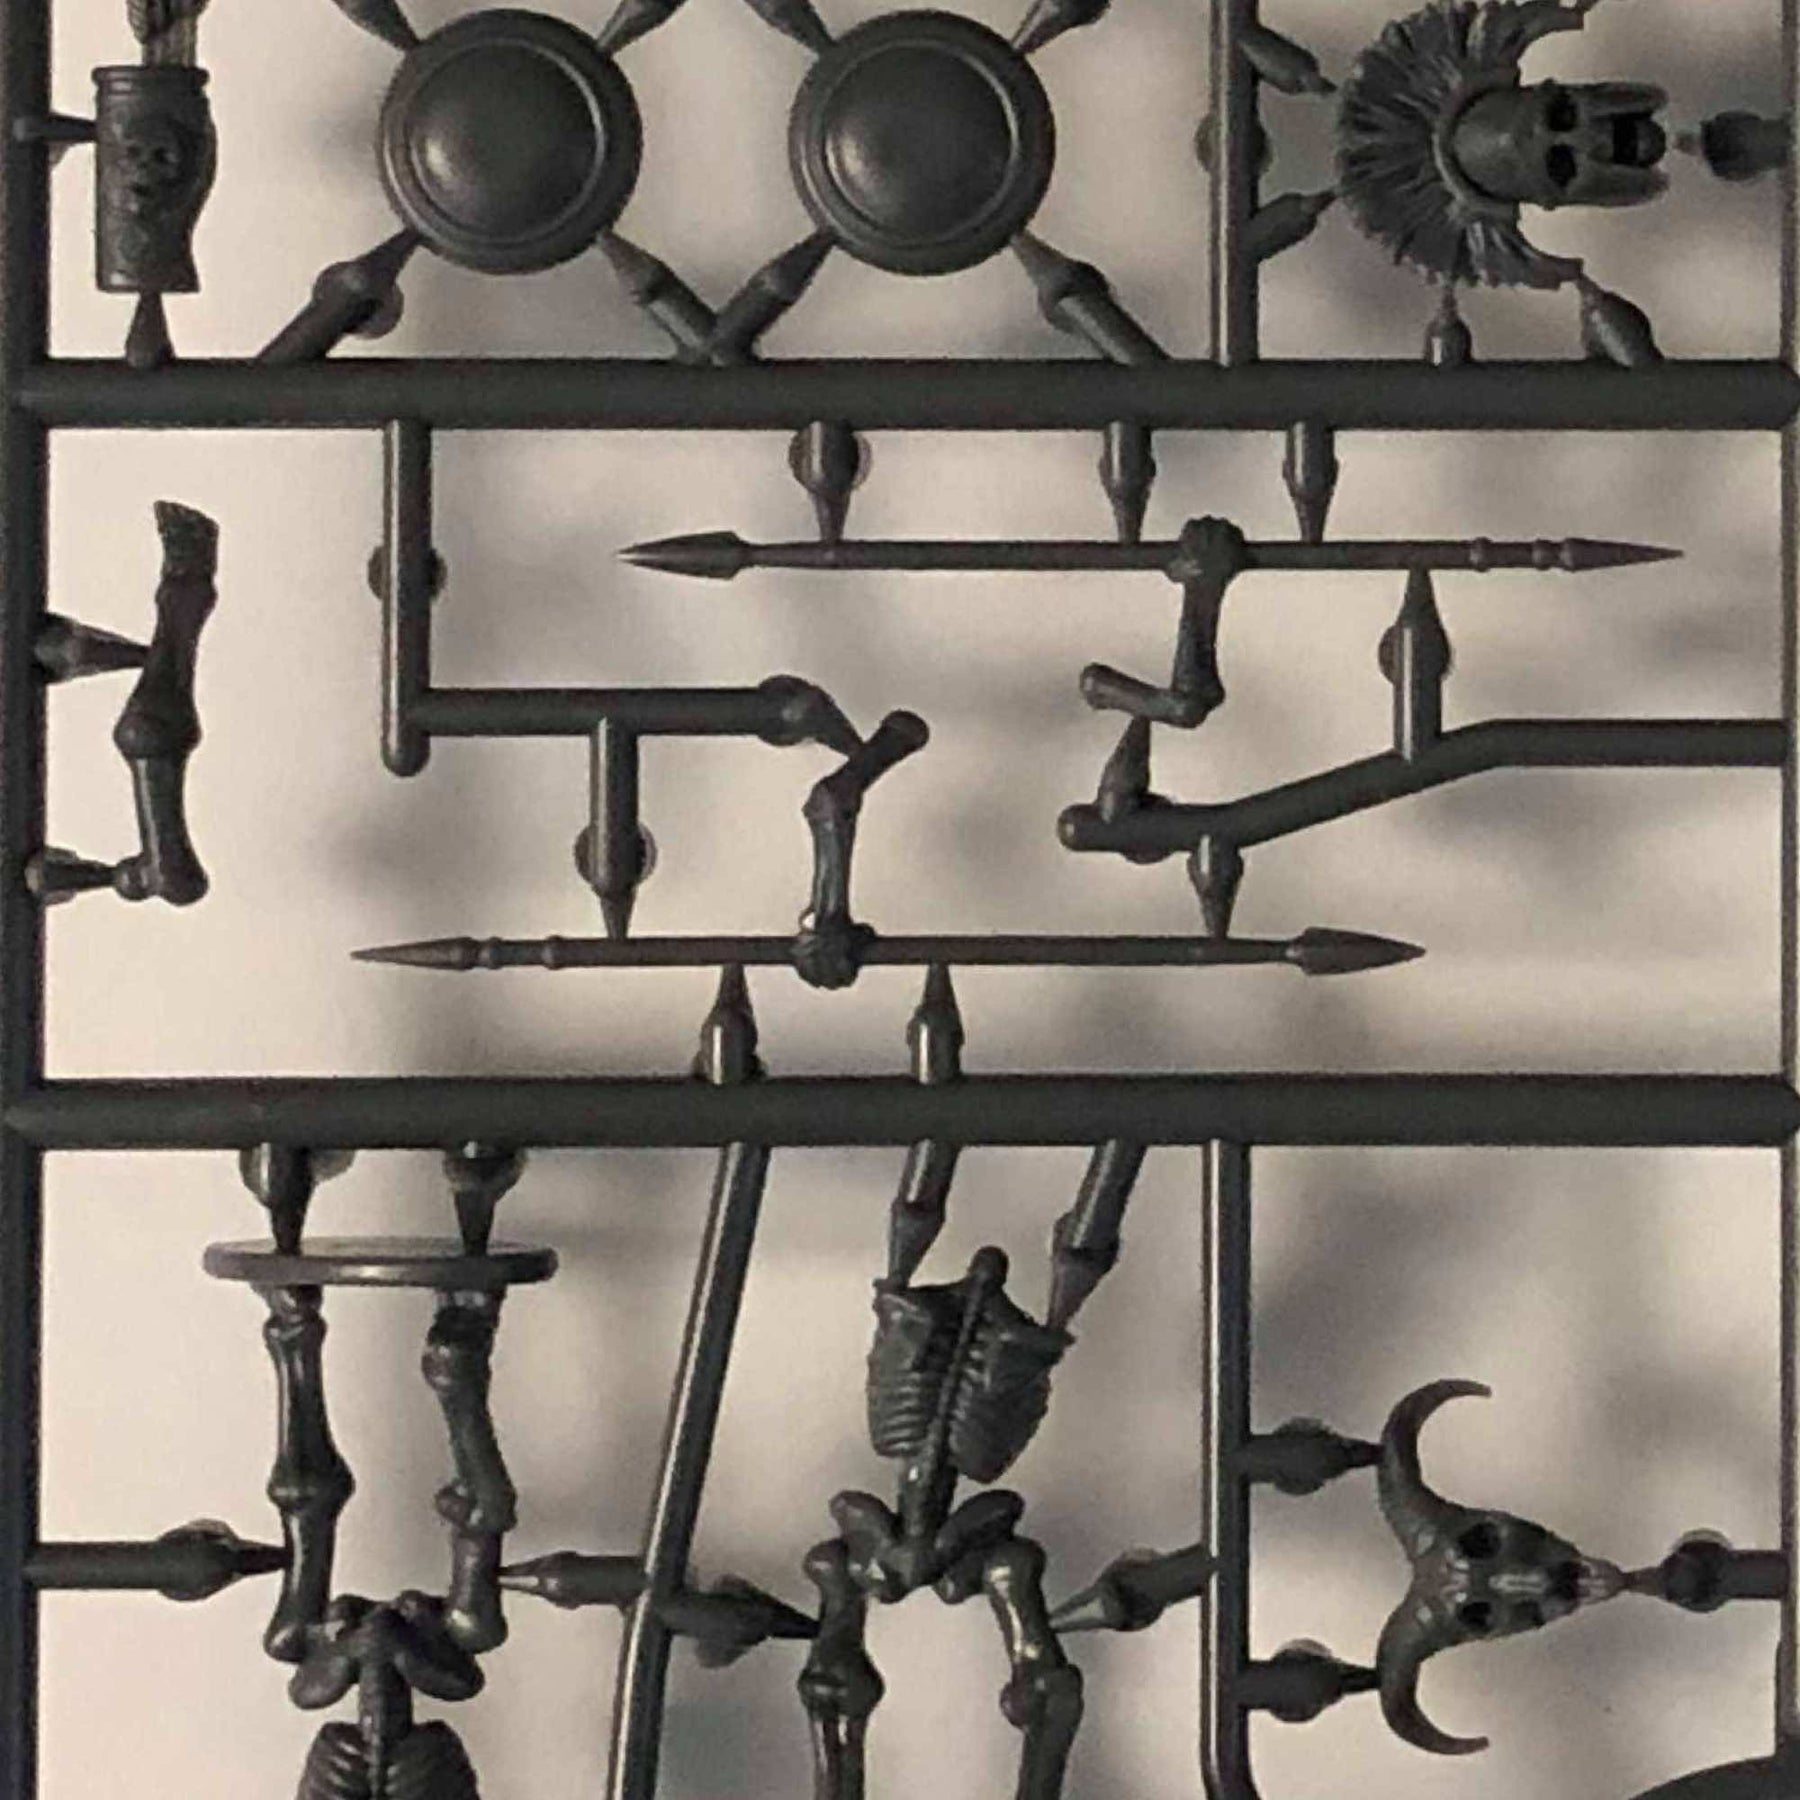 A Look at the Skeleton Sprue